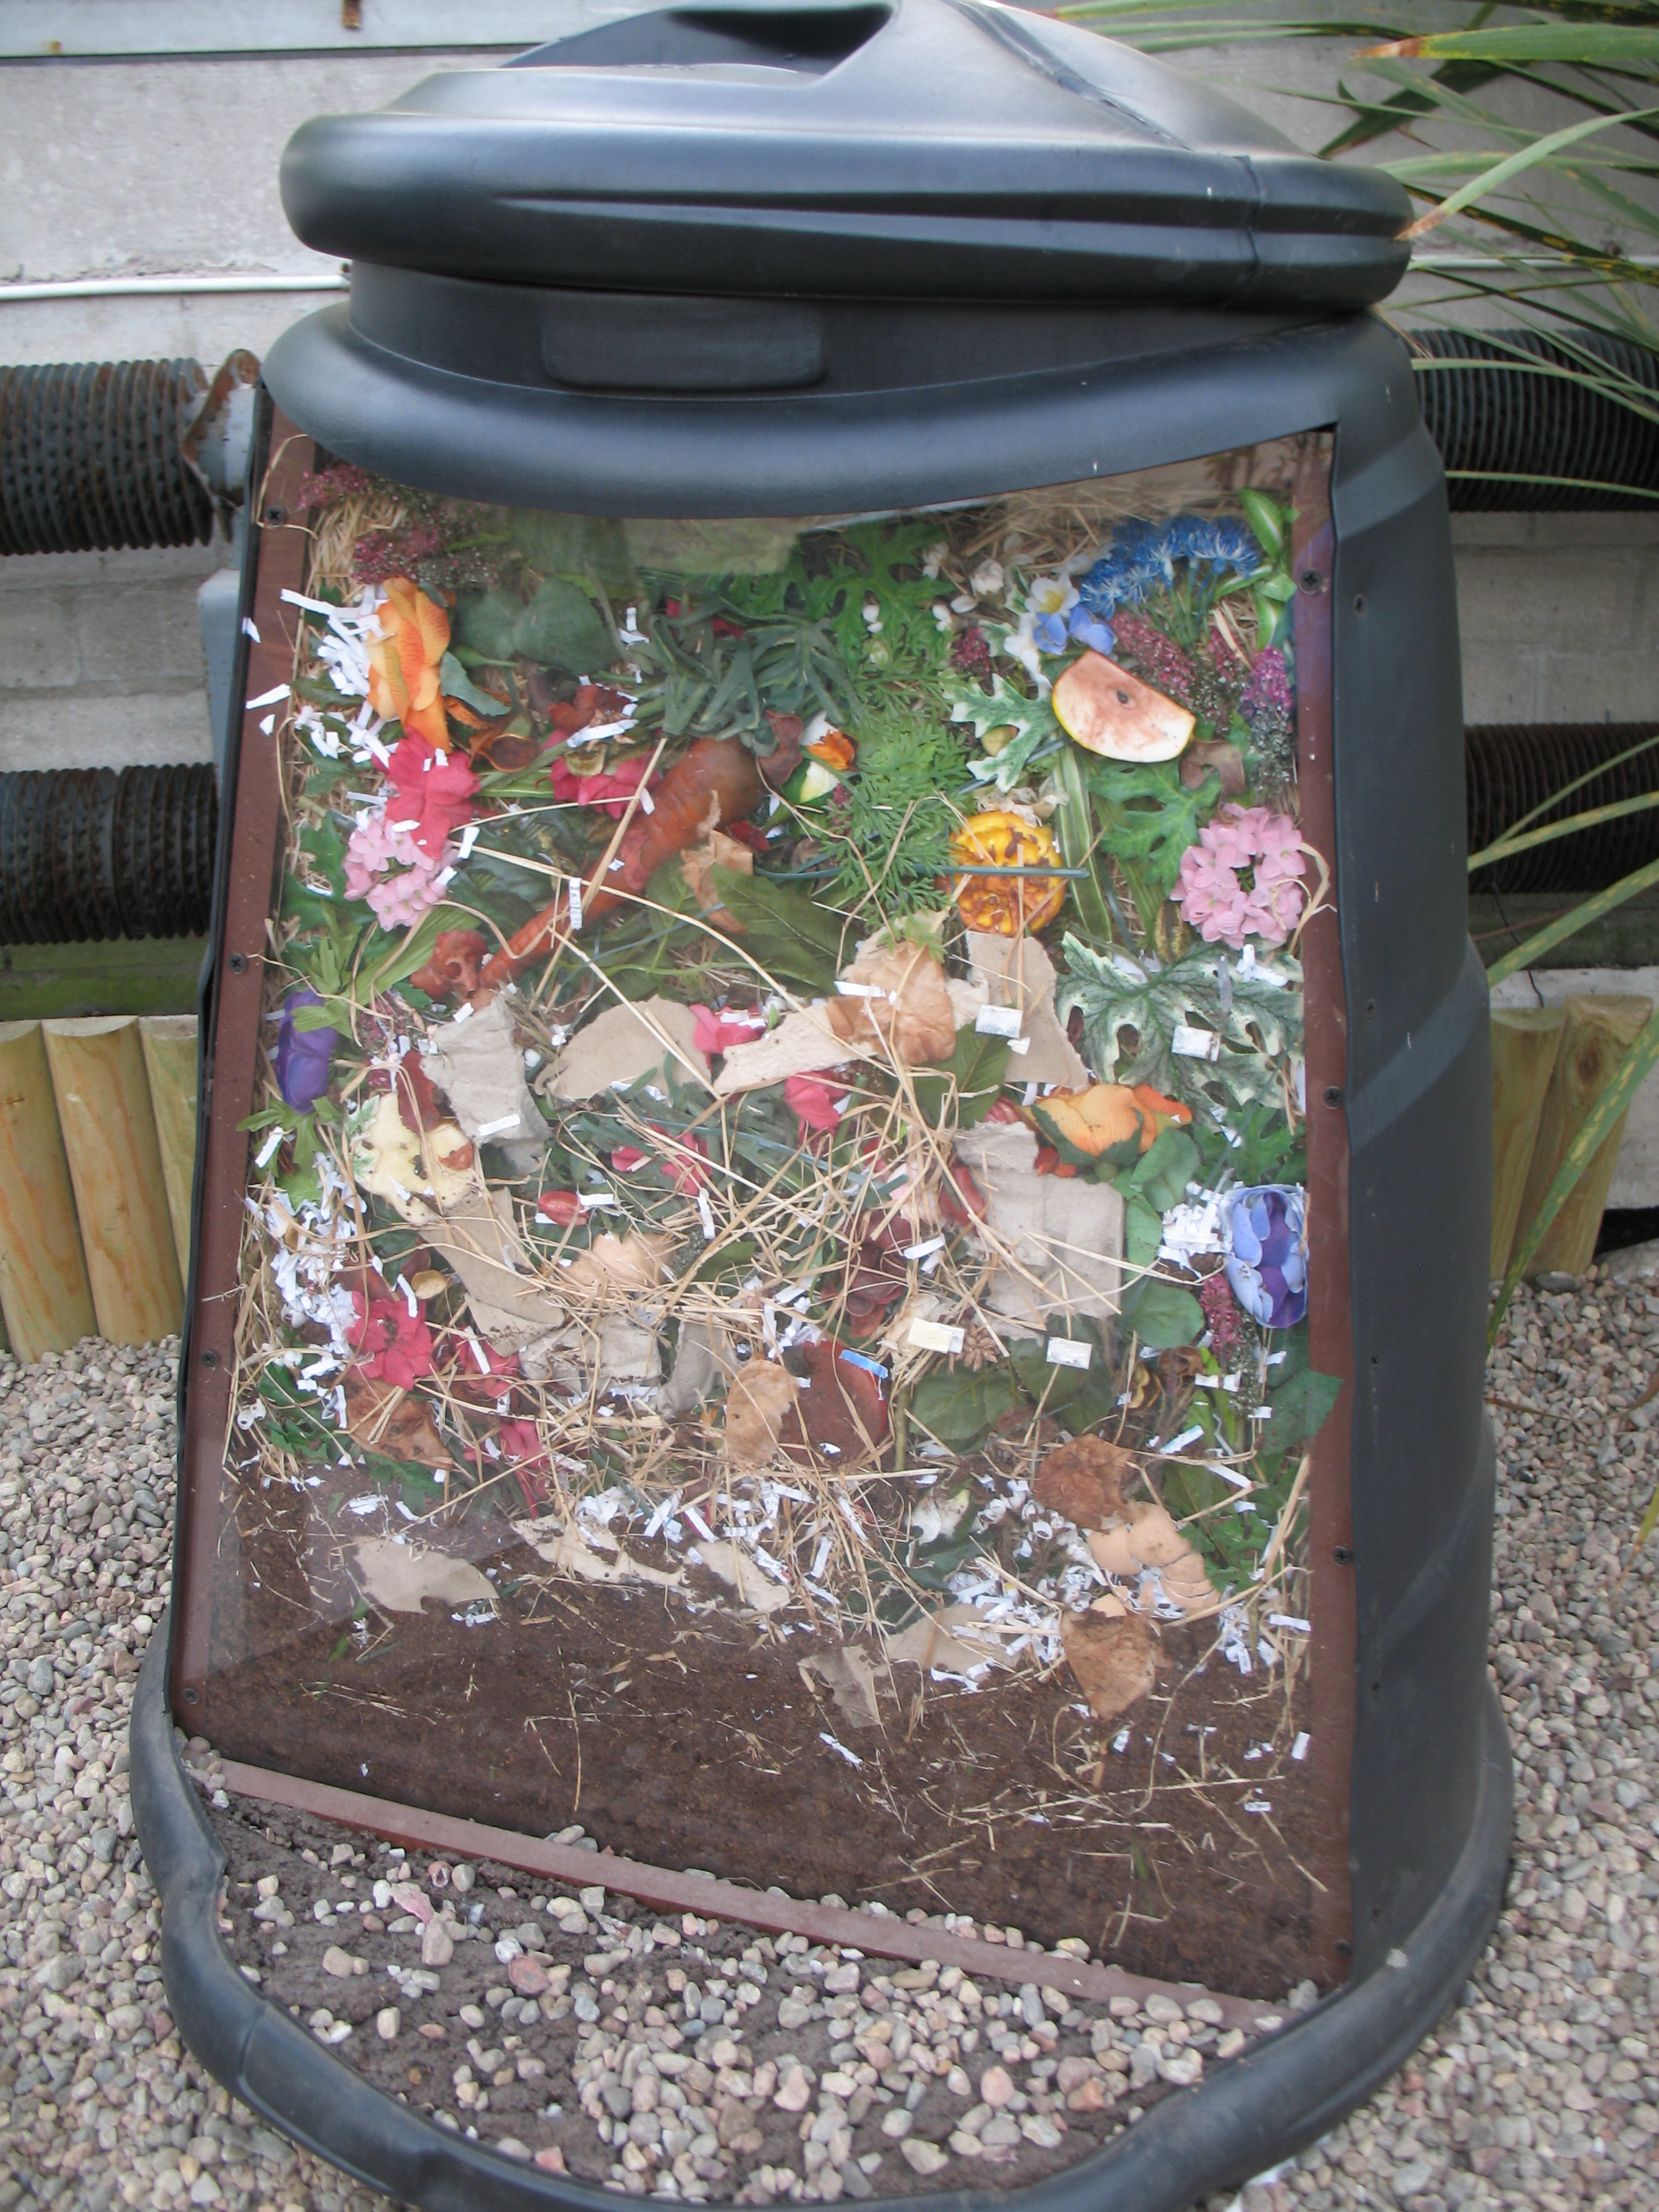 what is a composter used for